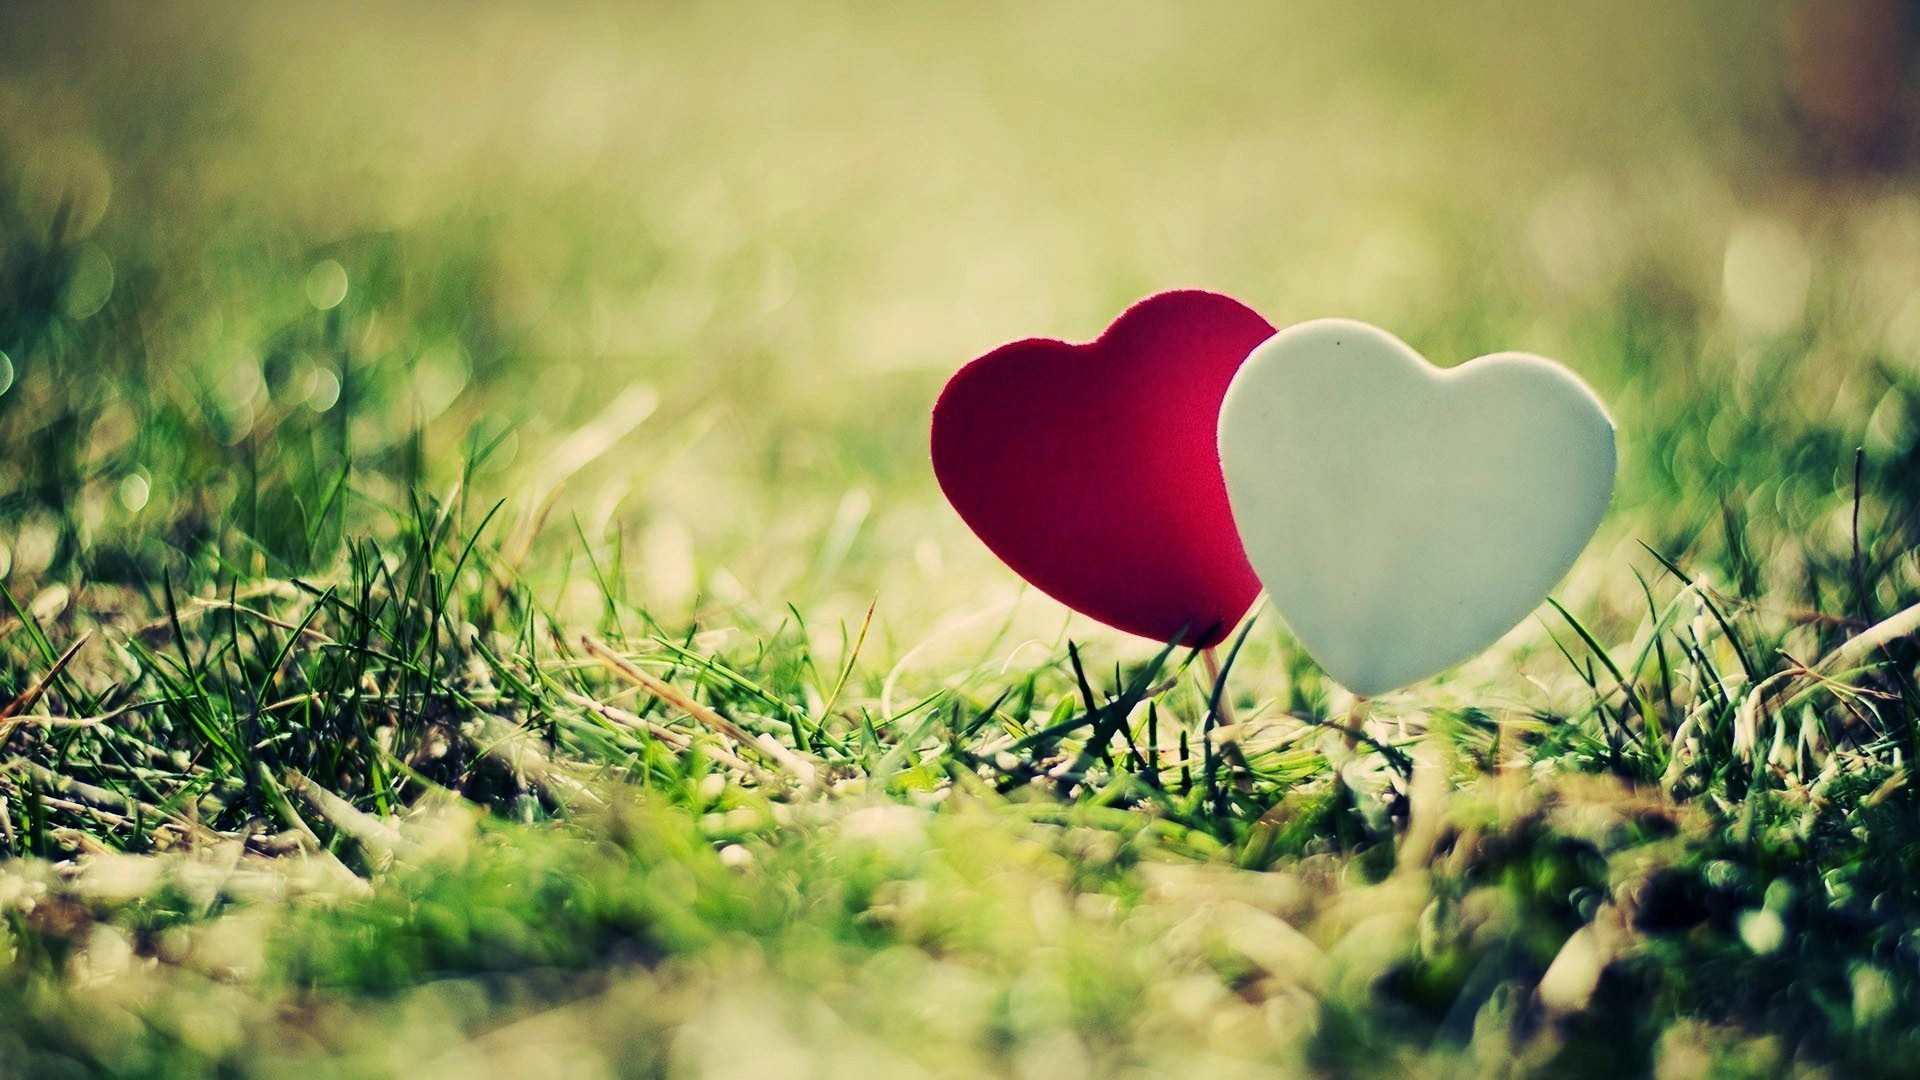 Love and Heart Wallpapers | Free Download HD Latest Beautiful Images